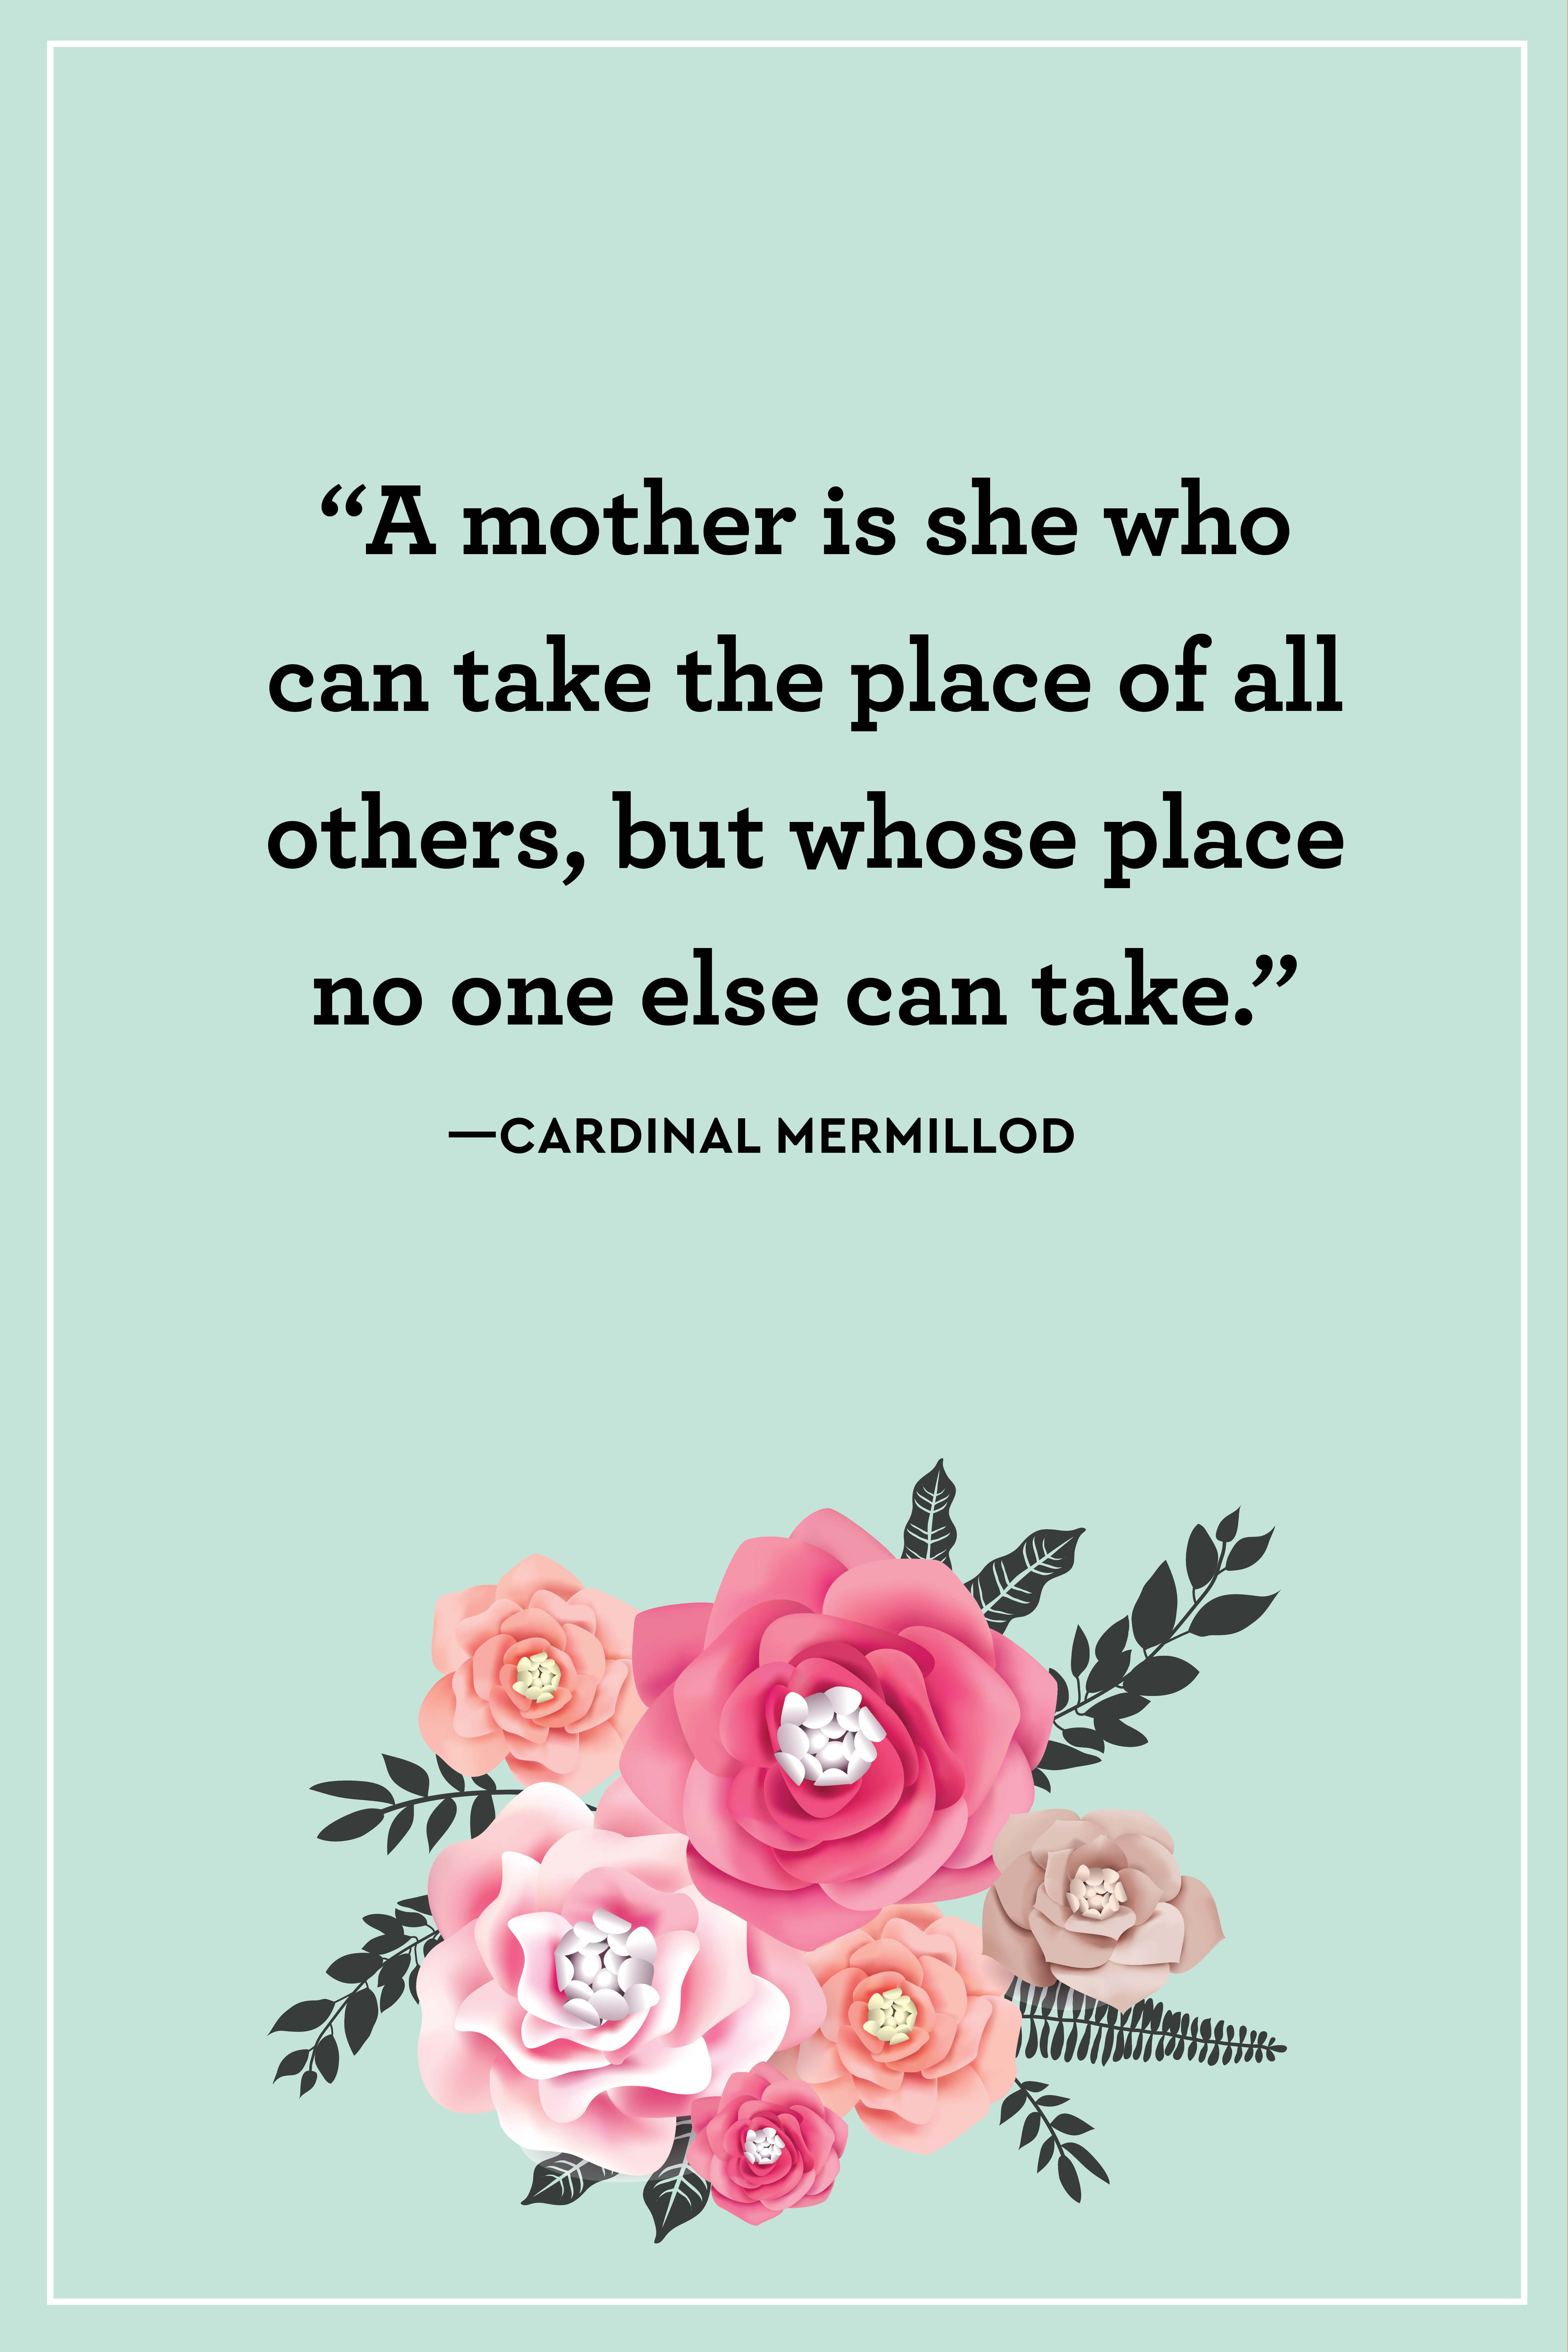 22 Happy Mothers Day Poems & Quotes - Verses For Mom - Free Printable Mothers Day Poems